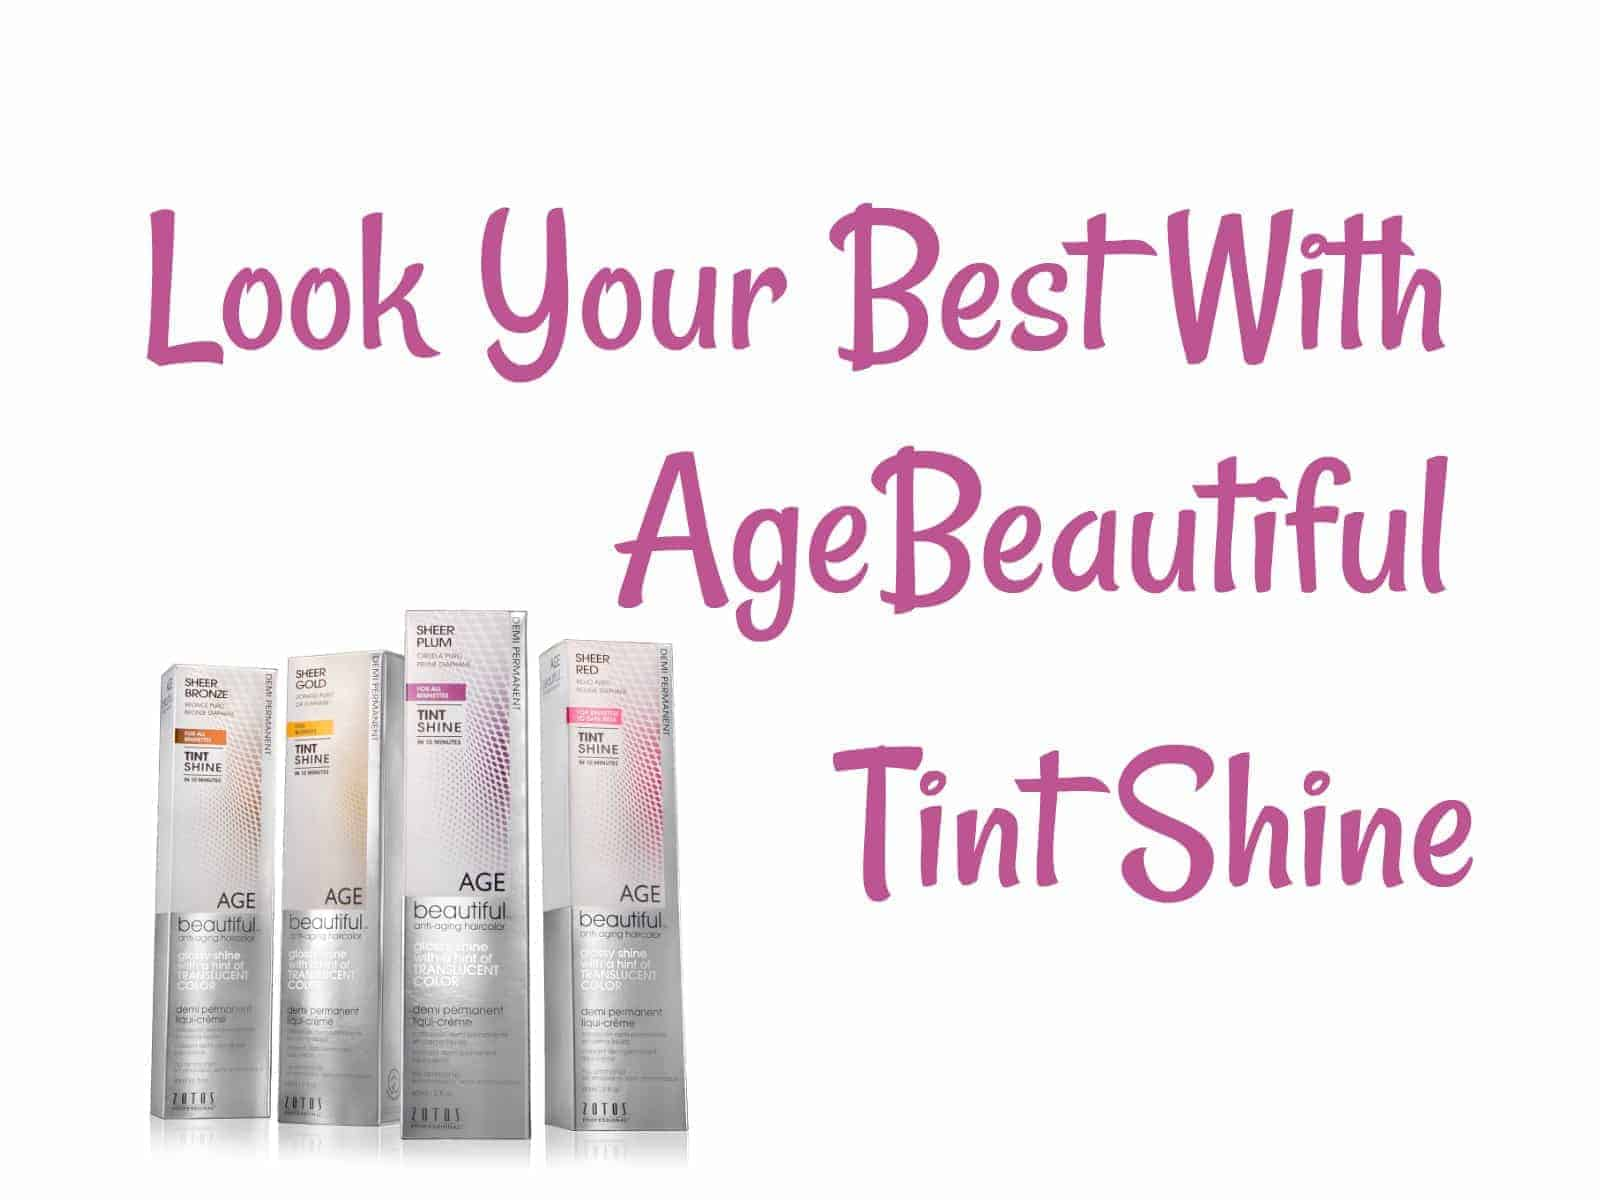 Look Your Best With AgeBeautiful Tint Shine